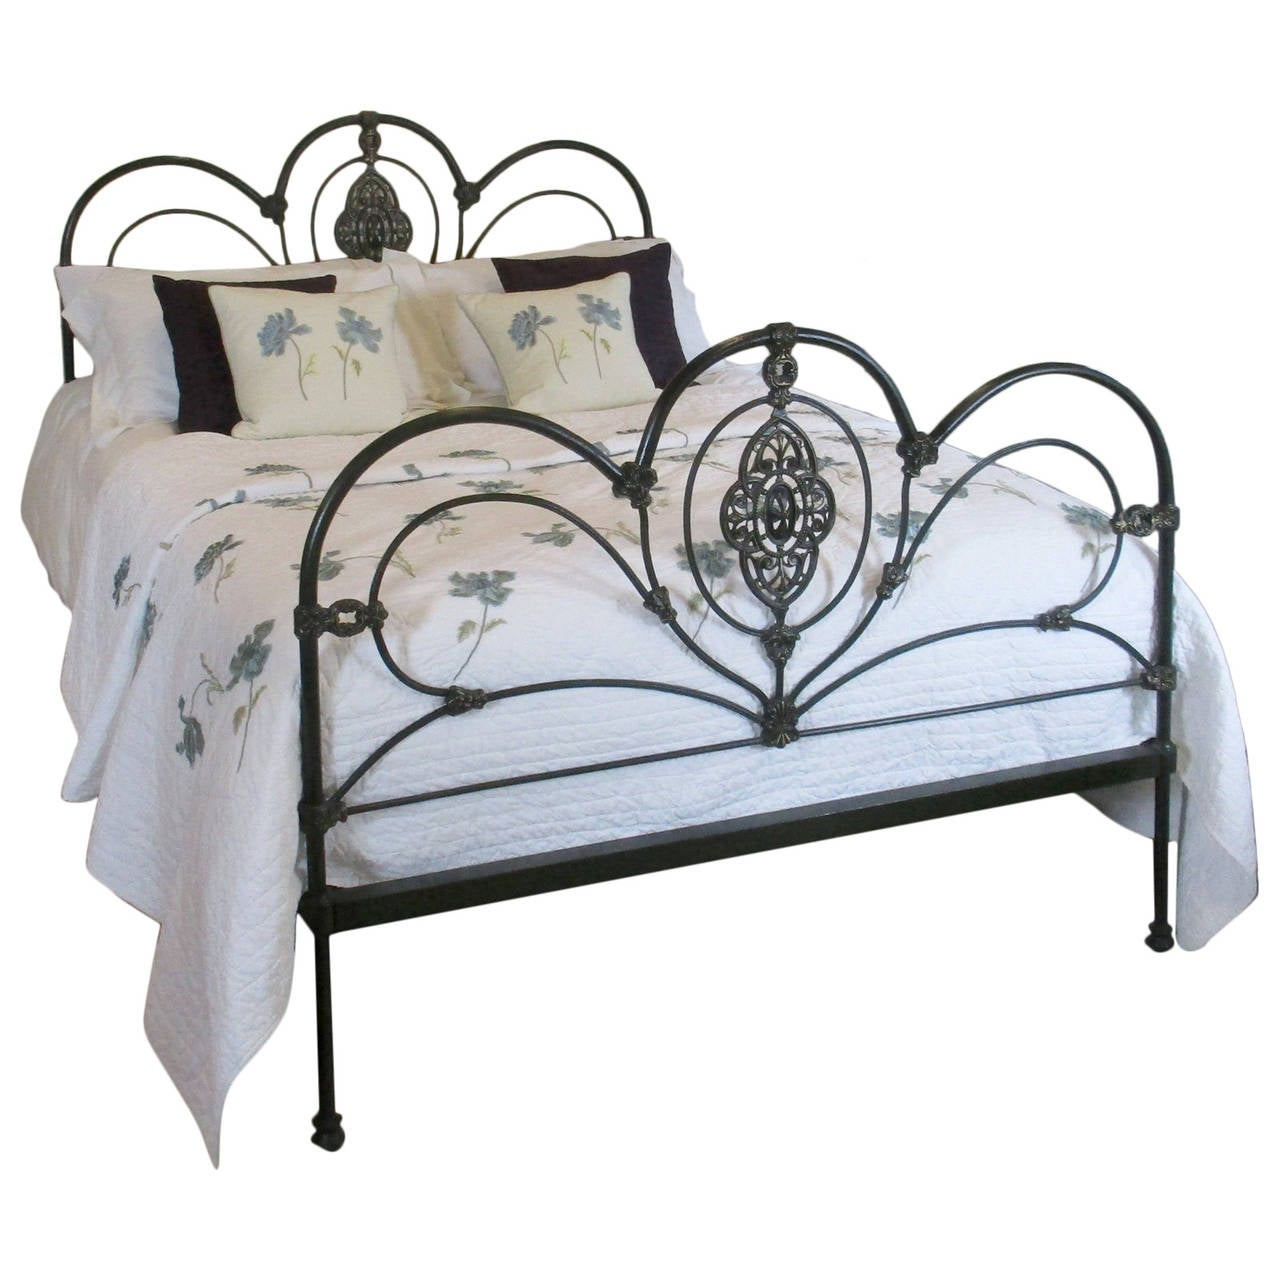 Ornate Cast Iron Bed Mk55 At 1stdibs